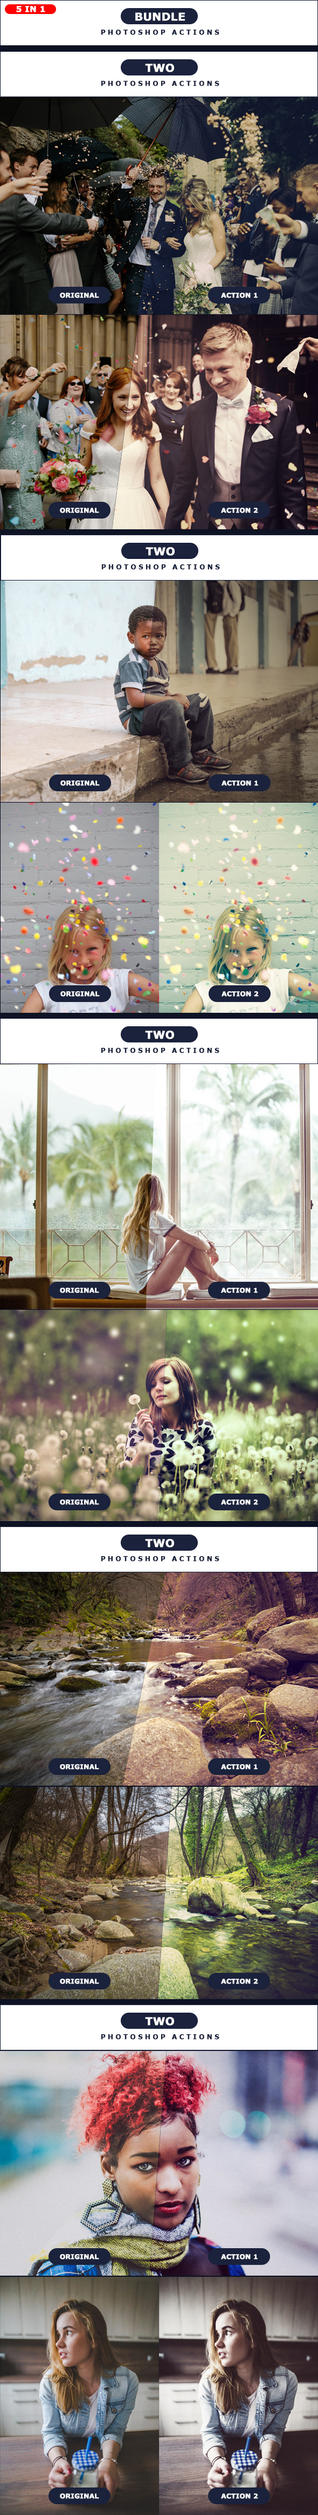 TWO - Photoshop Actions BUNDLE 5 IN 1 by PSActionsONLY